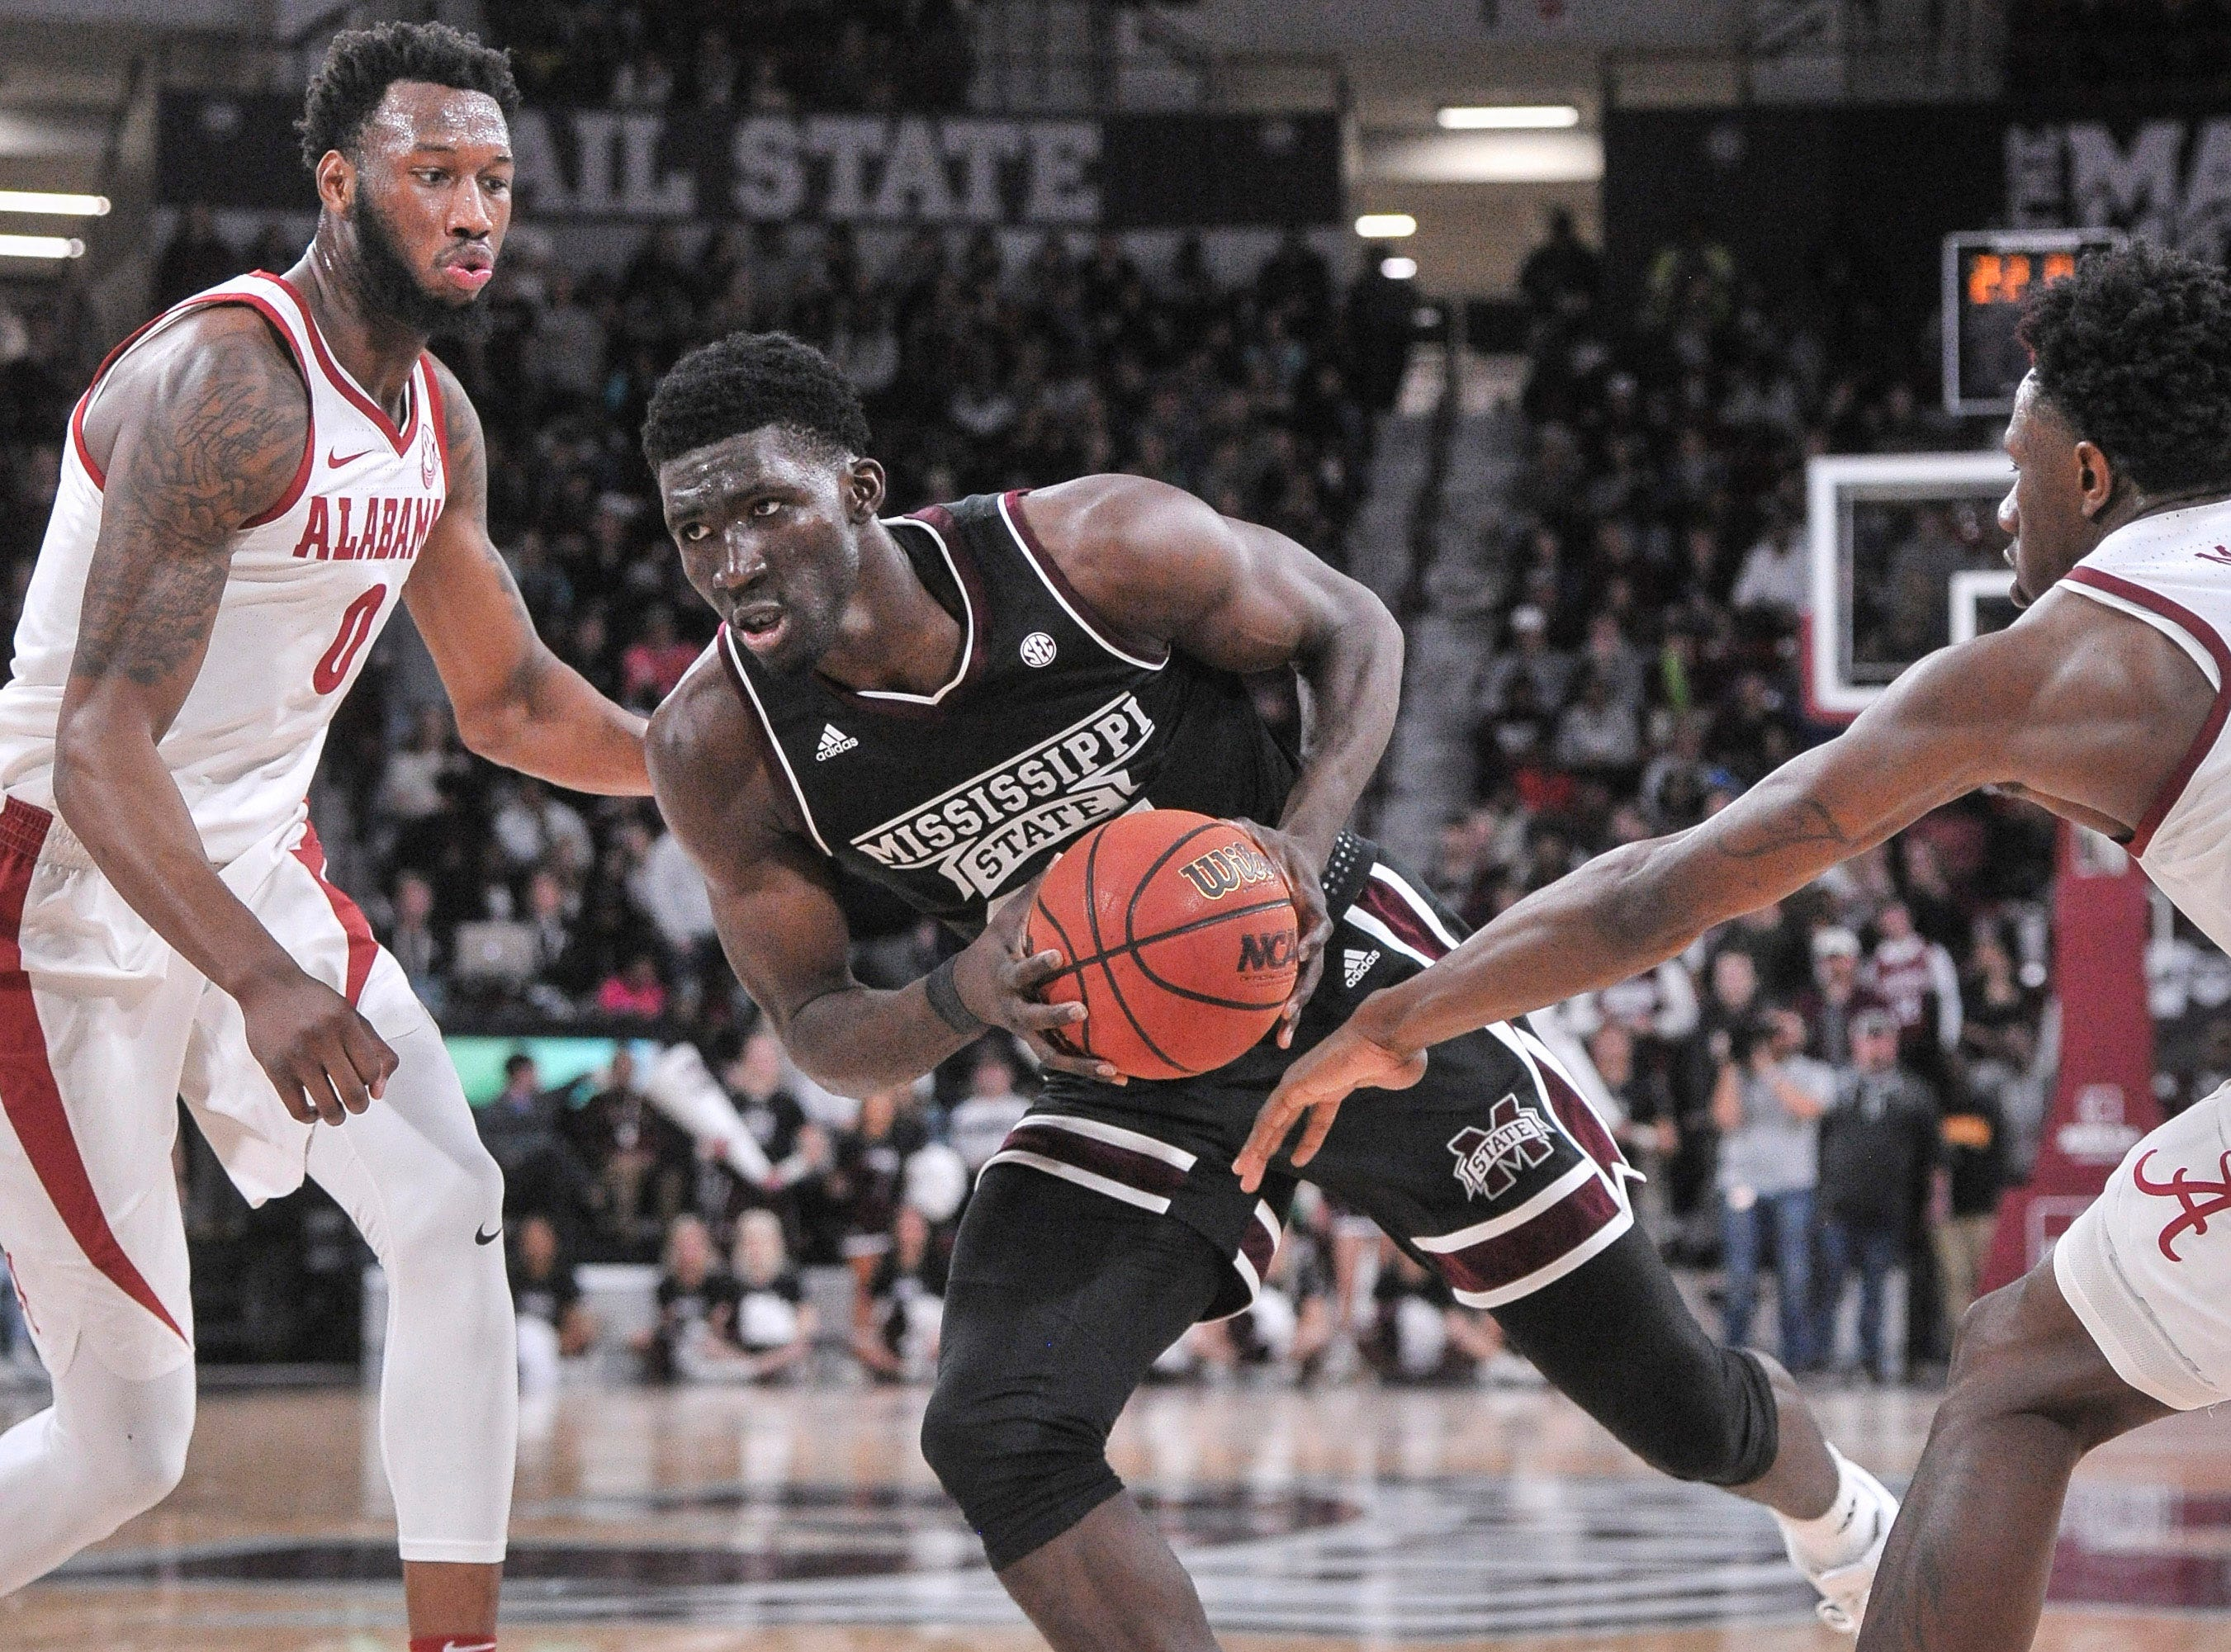 Feb 12, 2019; Starkville, MS, USA; Mississippi State Bulldogs forward Abdul Ado (24) goes to the basket against Alabama Crimson Tide forward Donta Hall (0) during the first half at Humphrey Coliseum. Mandatory Credit: Justin Ford-USA TODAY Sports